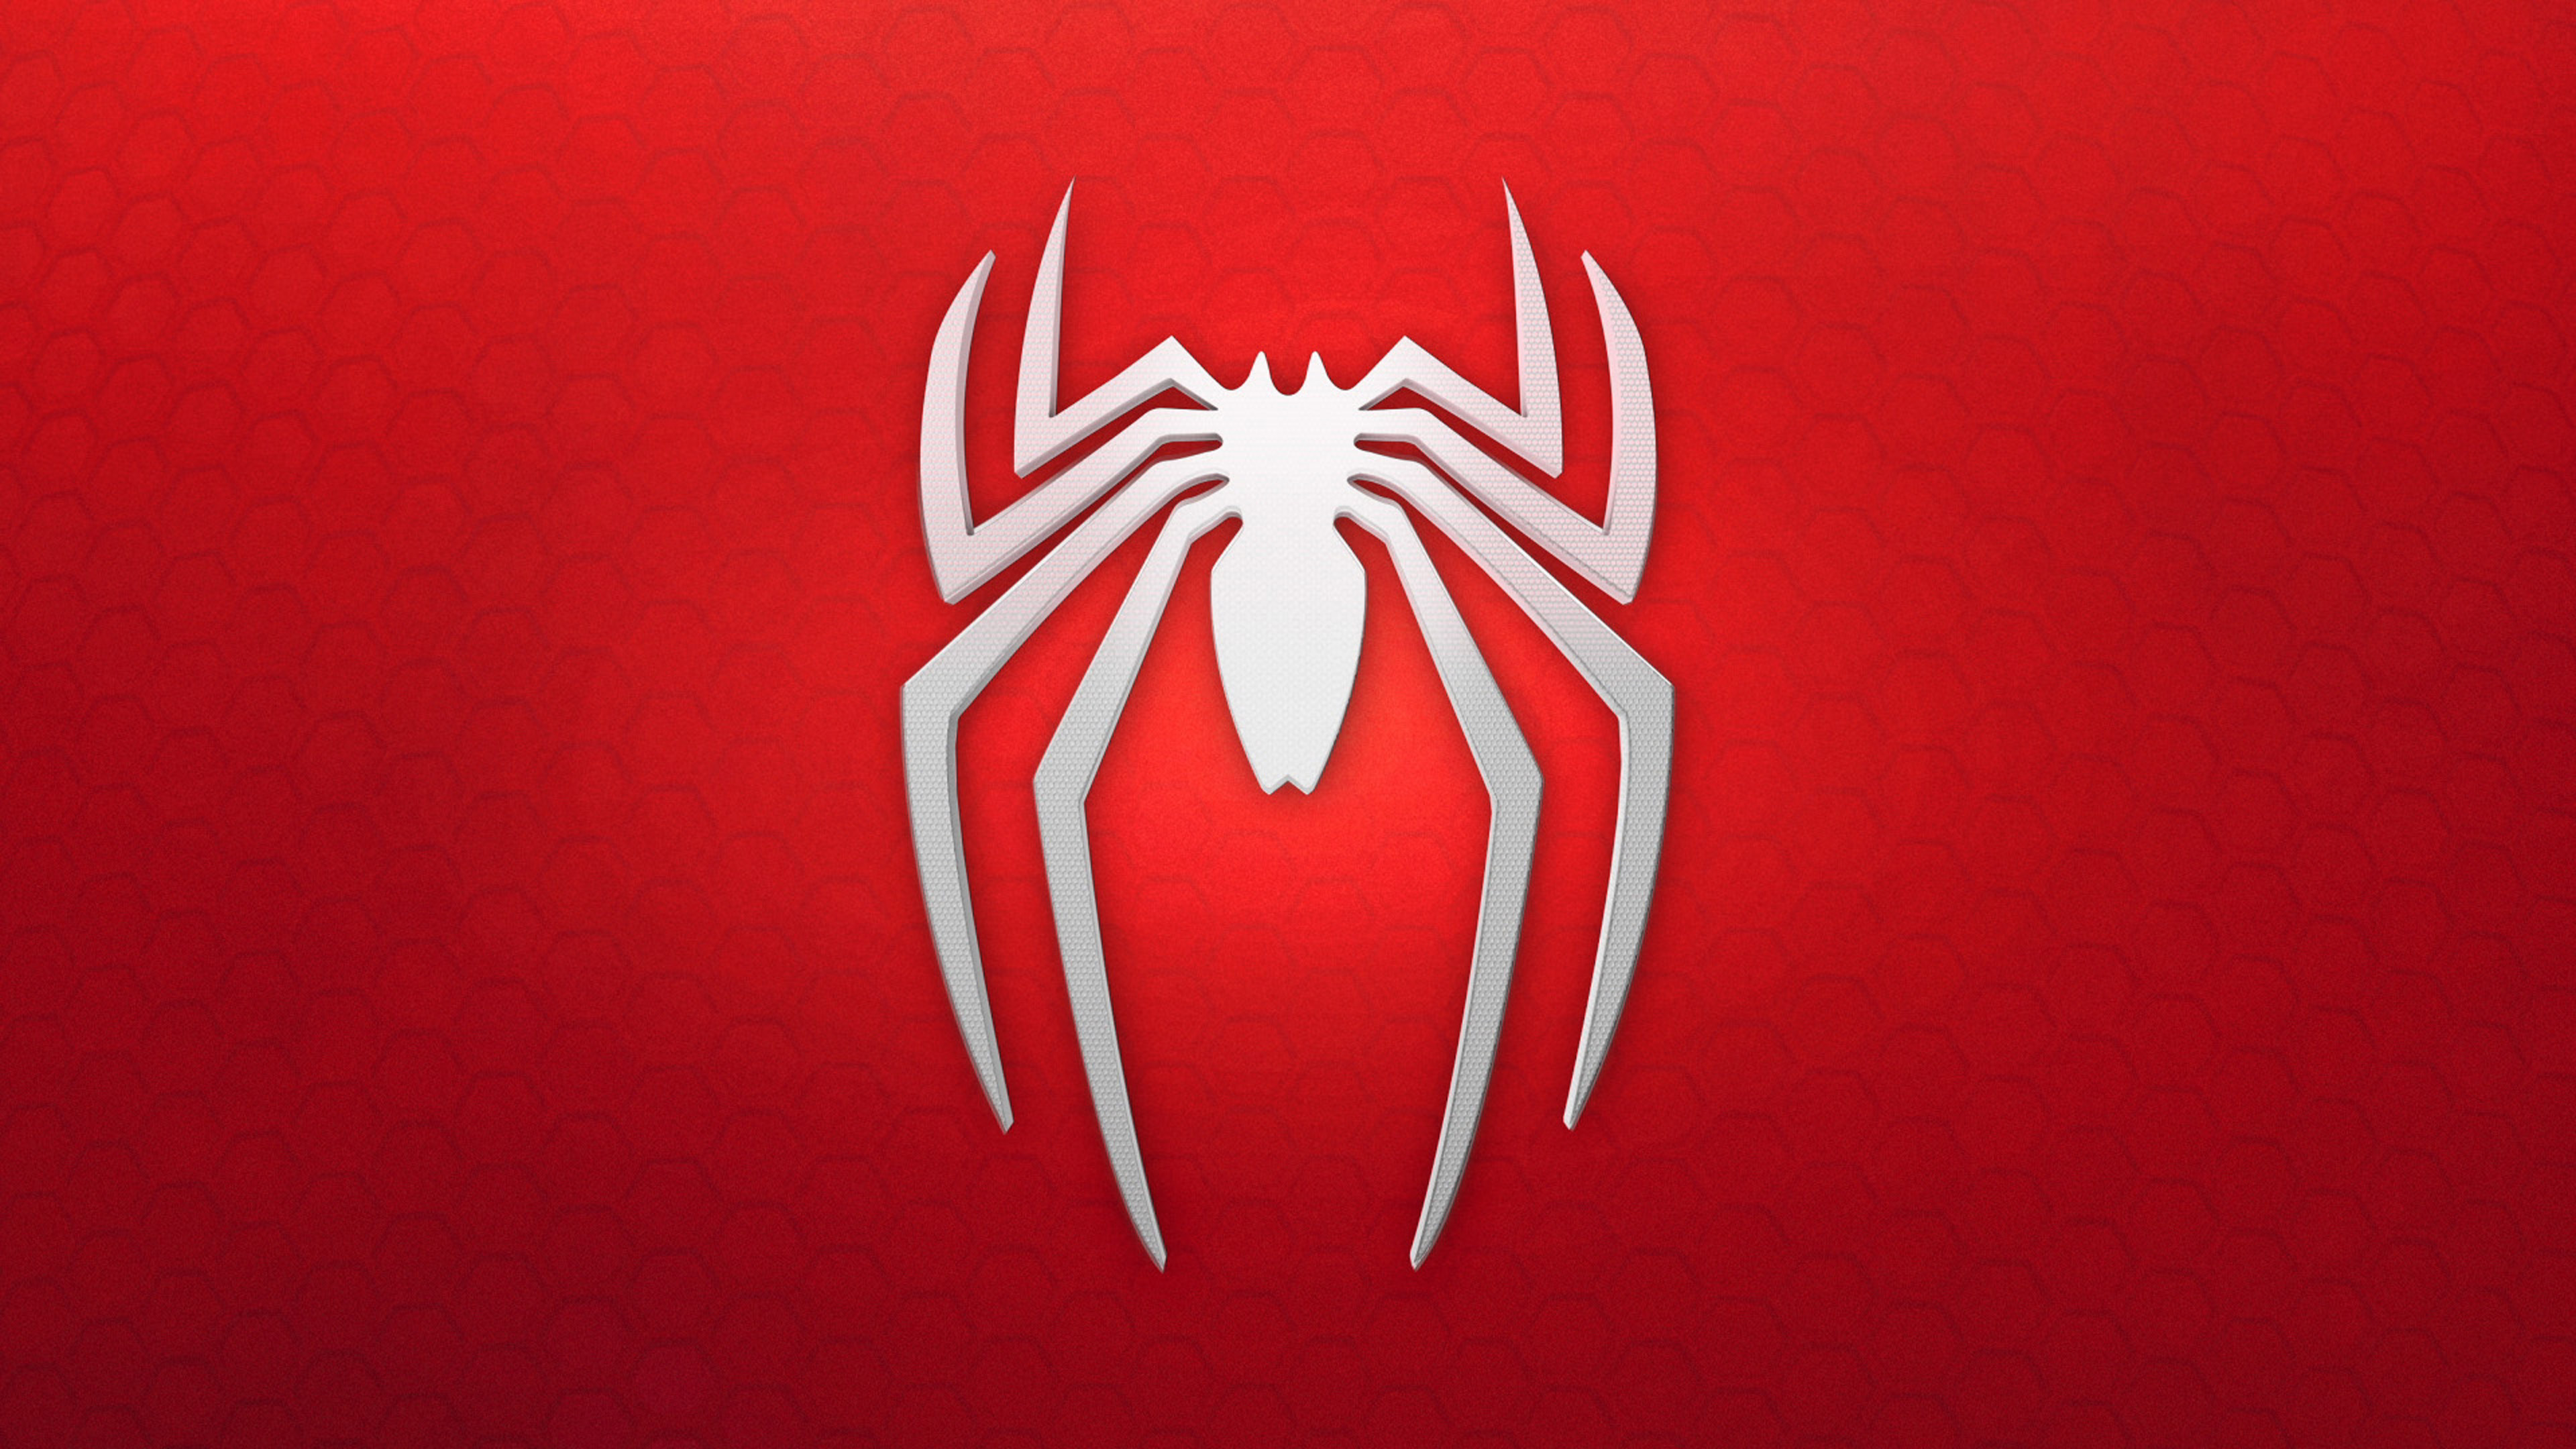 Spiderman 4k Logo Background